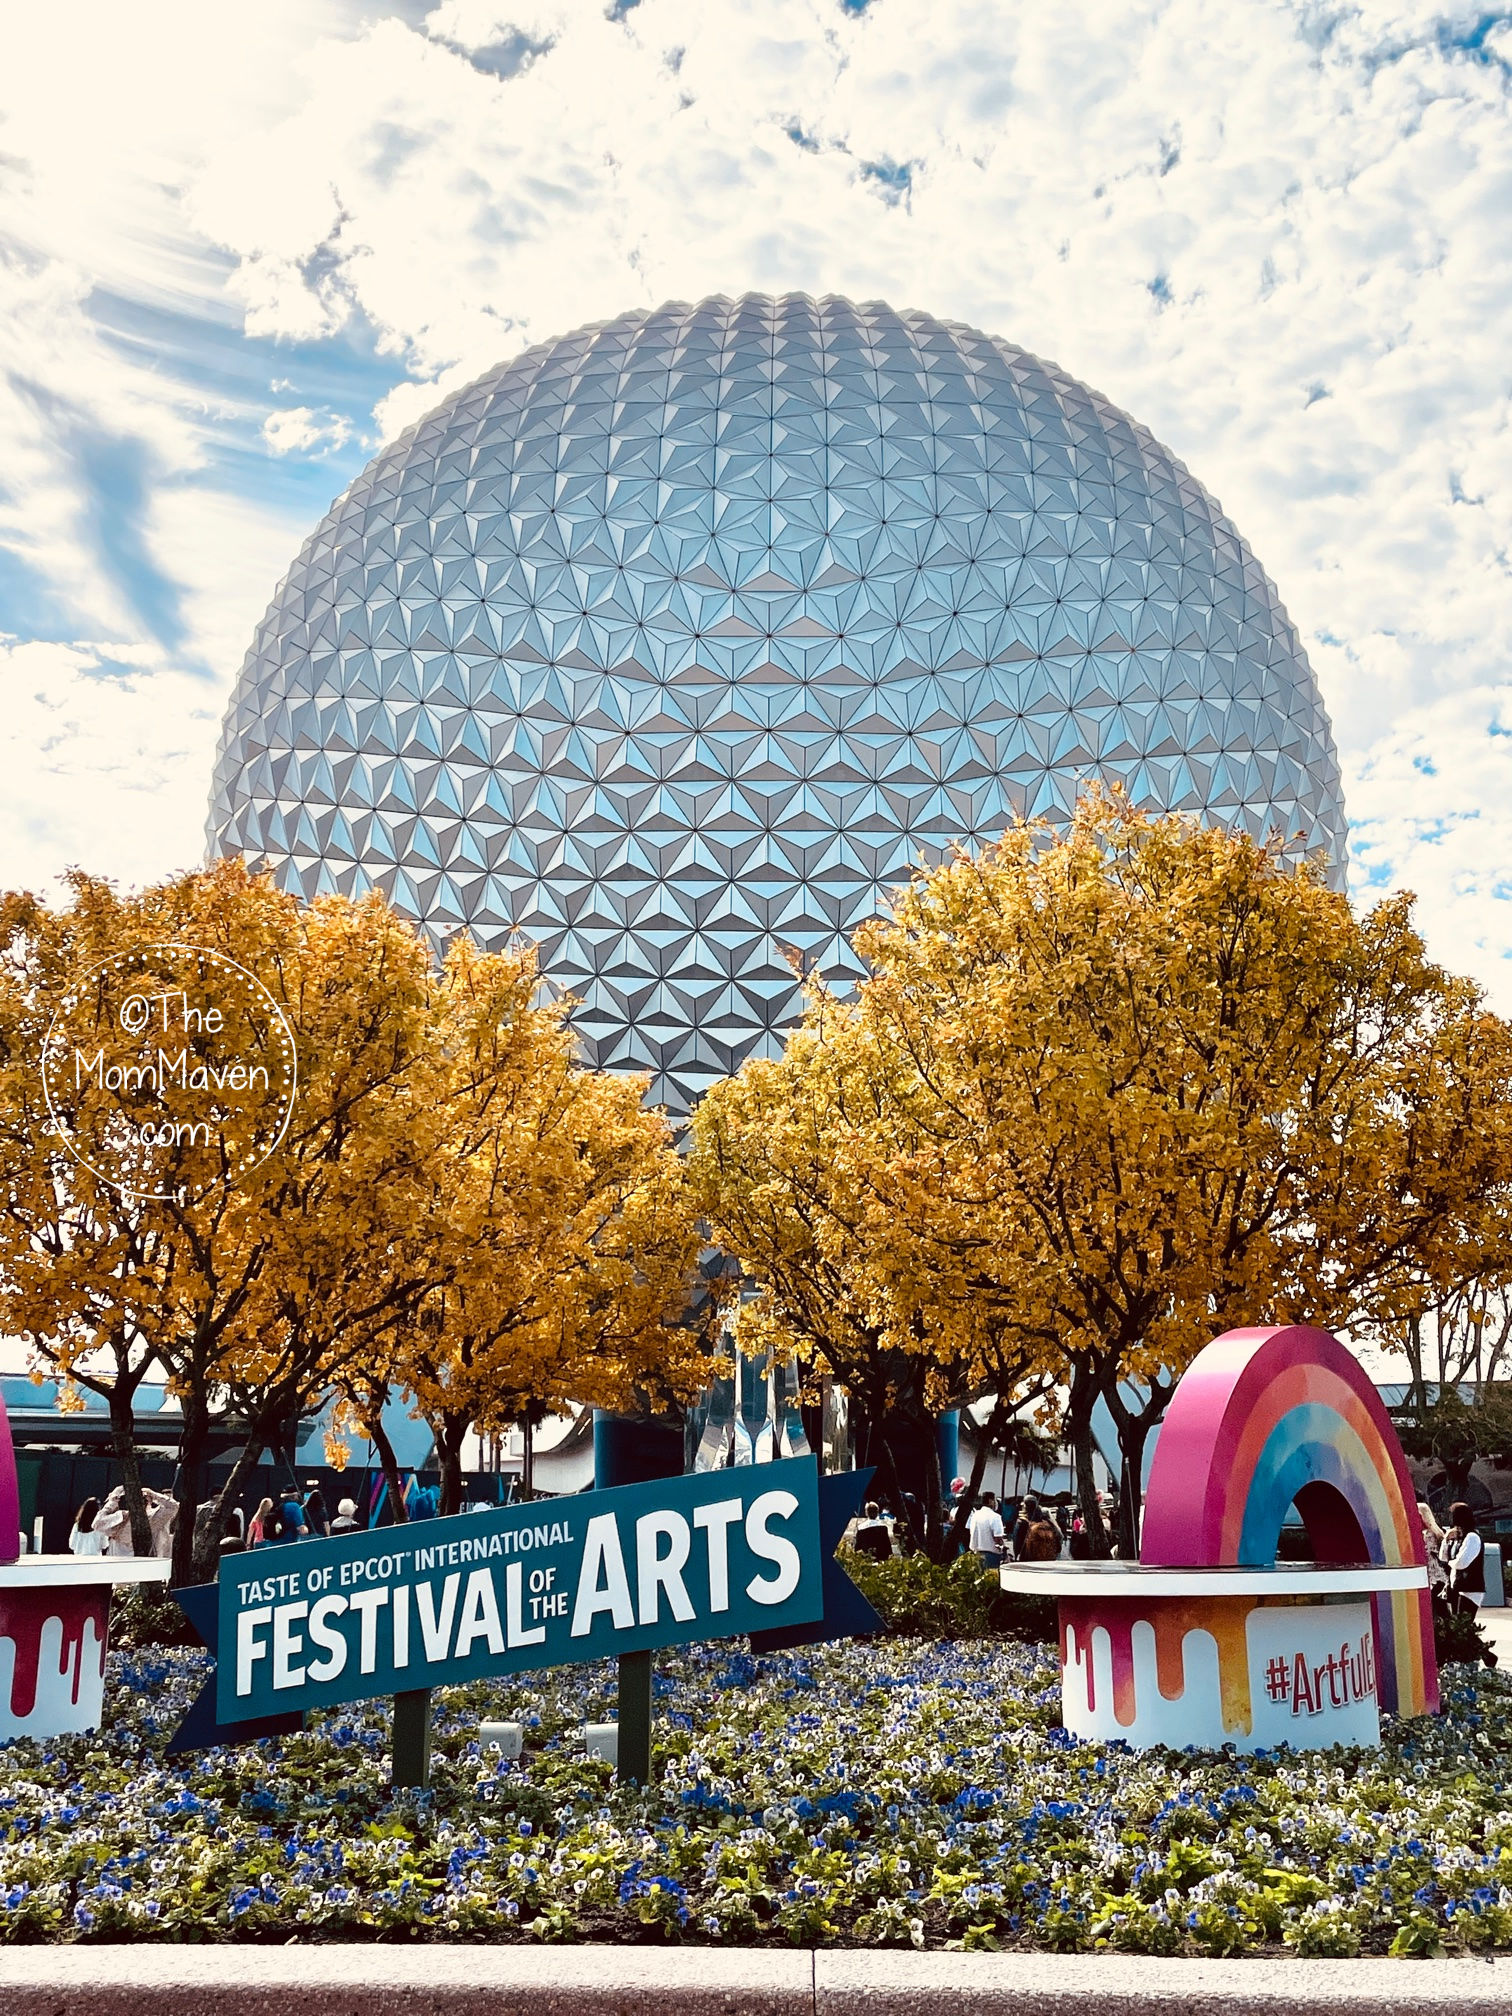 The Epcot International Festival of the Arts is my favorite of all the Epcot festivals! This year the festival is celebrating its 5th anniversary.